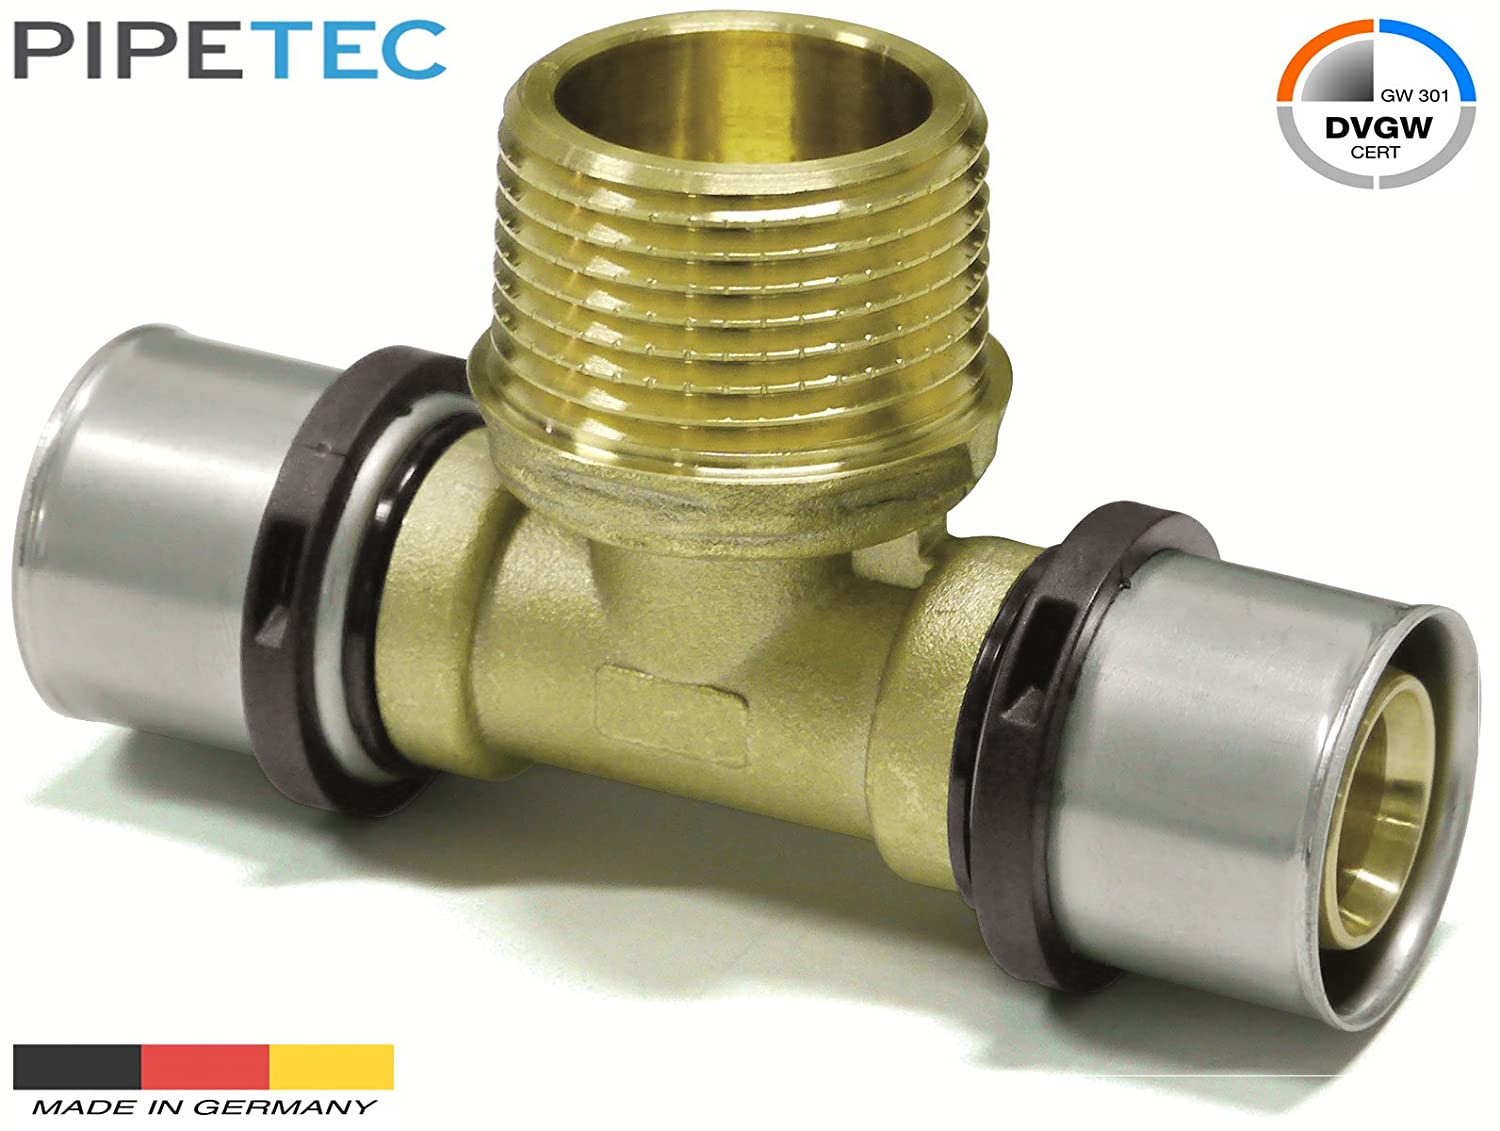 TH Pipetec Press-T-St/ück mit Au/ßengewinde 26x3mm 1-26x3mm DVGW